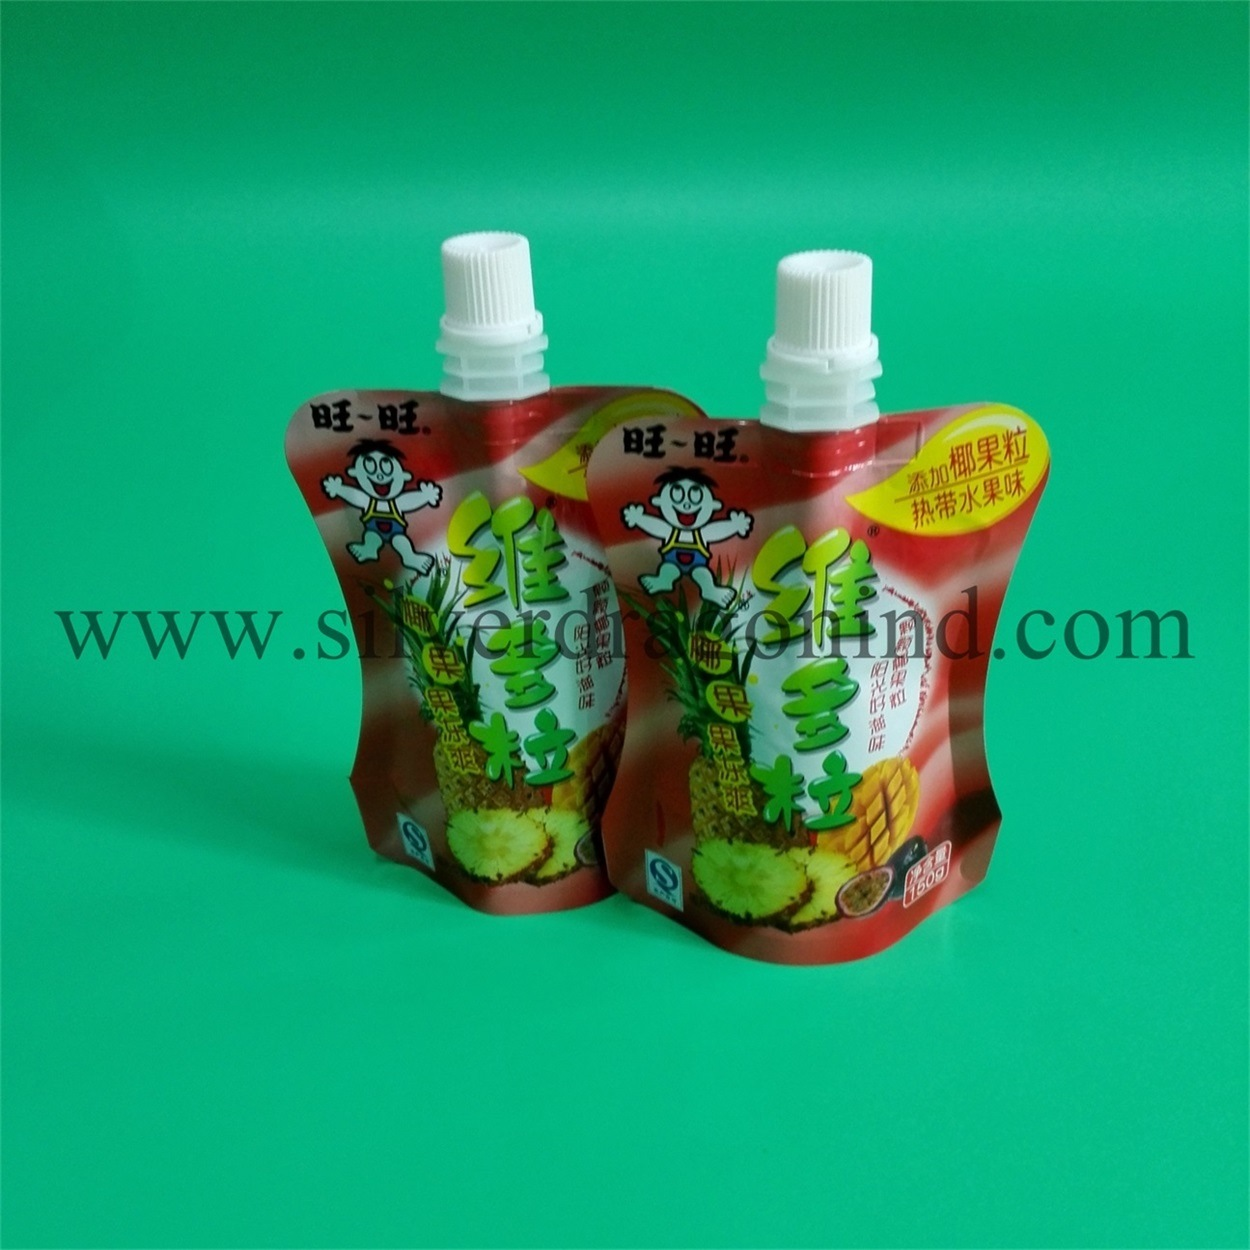 China Self Standing Pouch With Spout For Drinks Bag In Box Stading Pouce Liquid